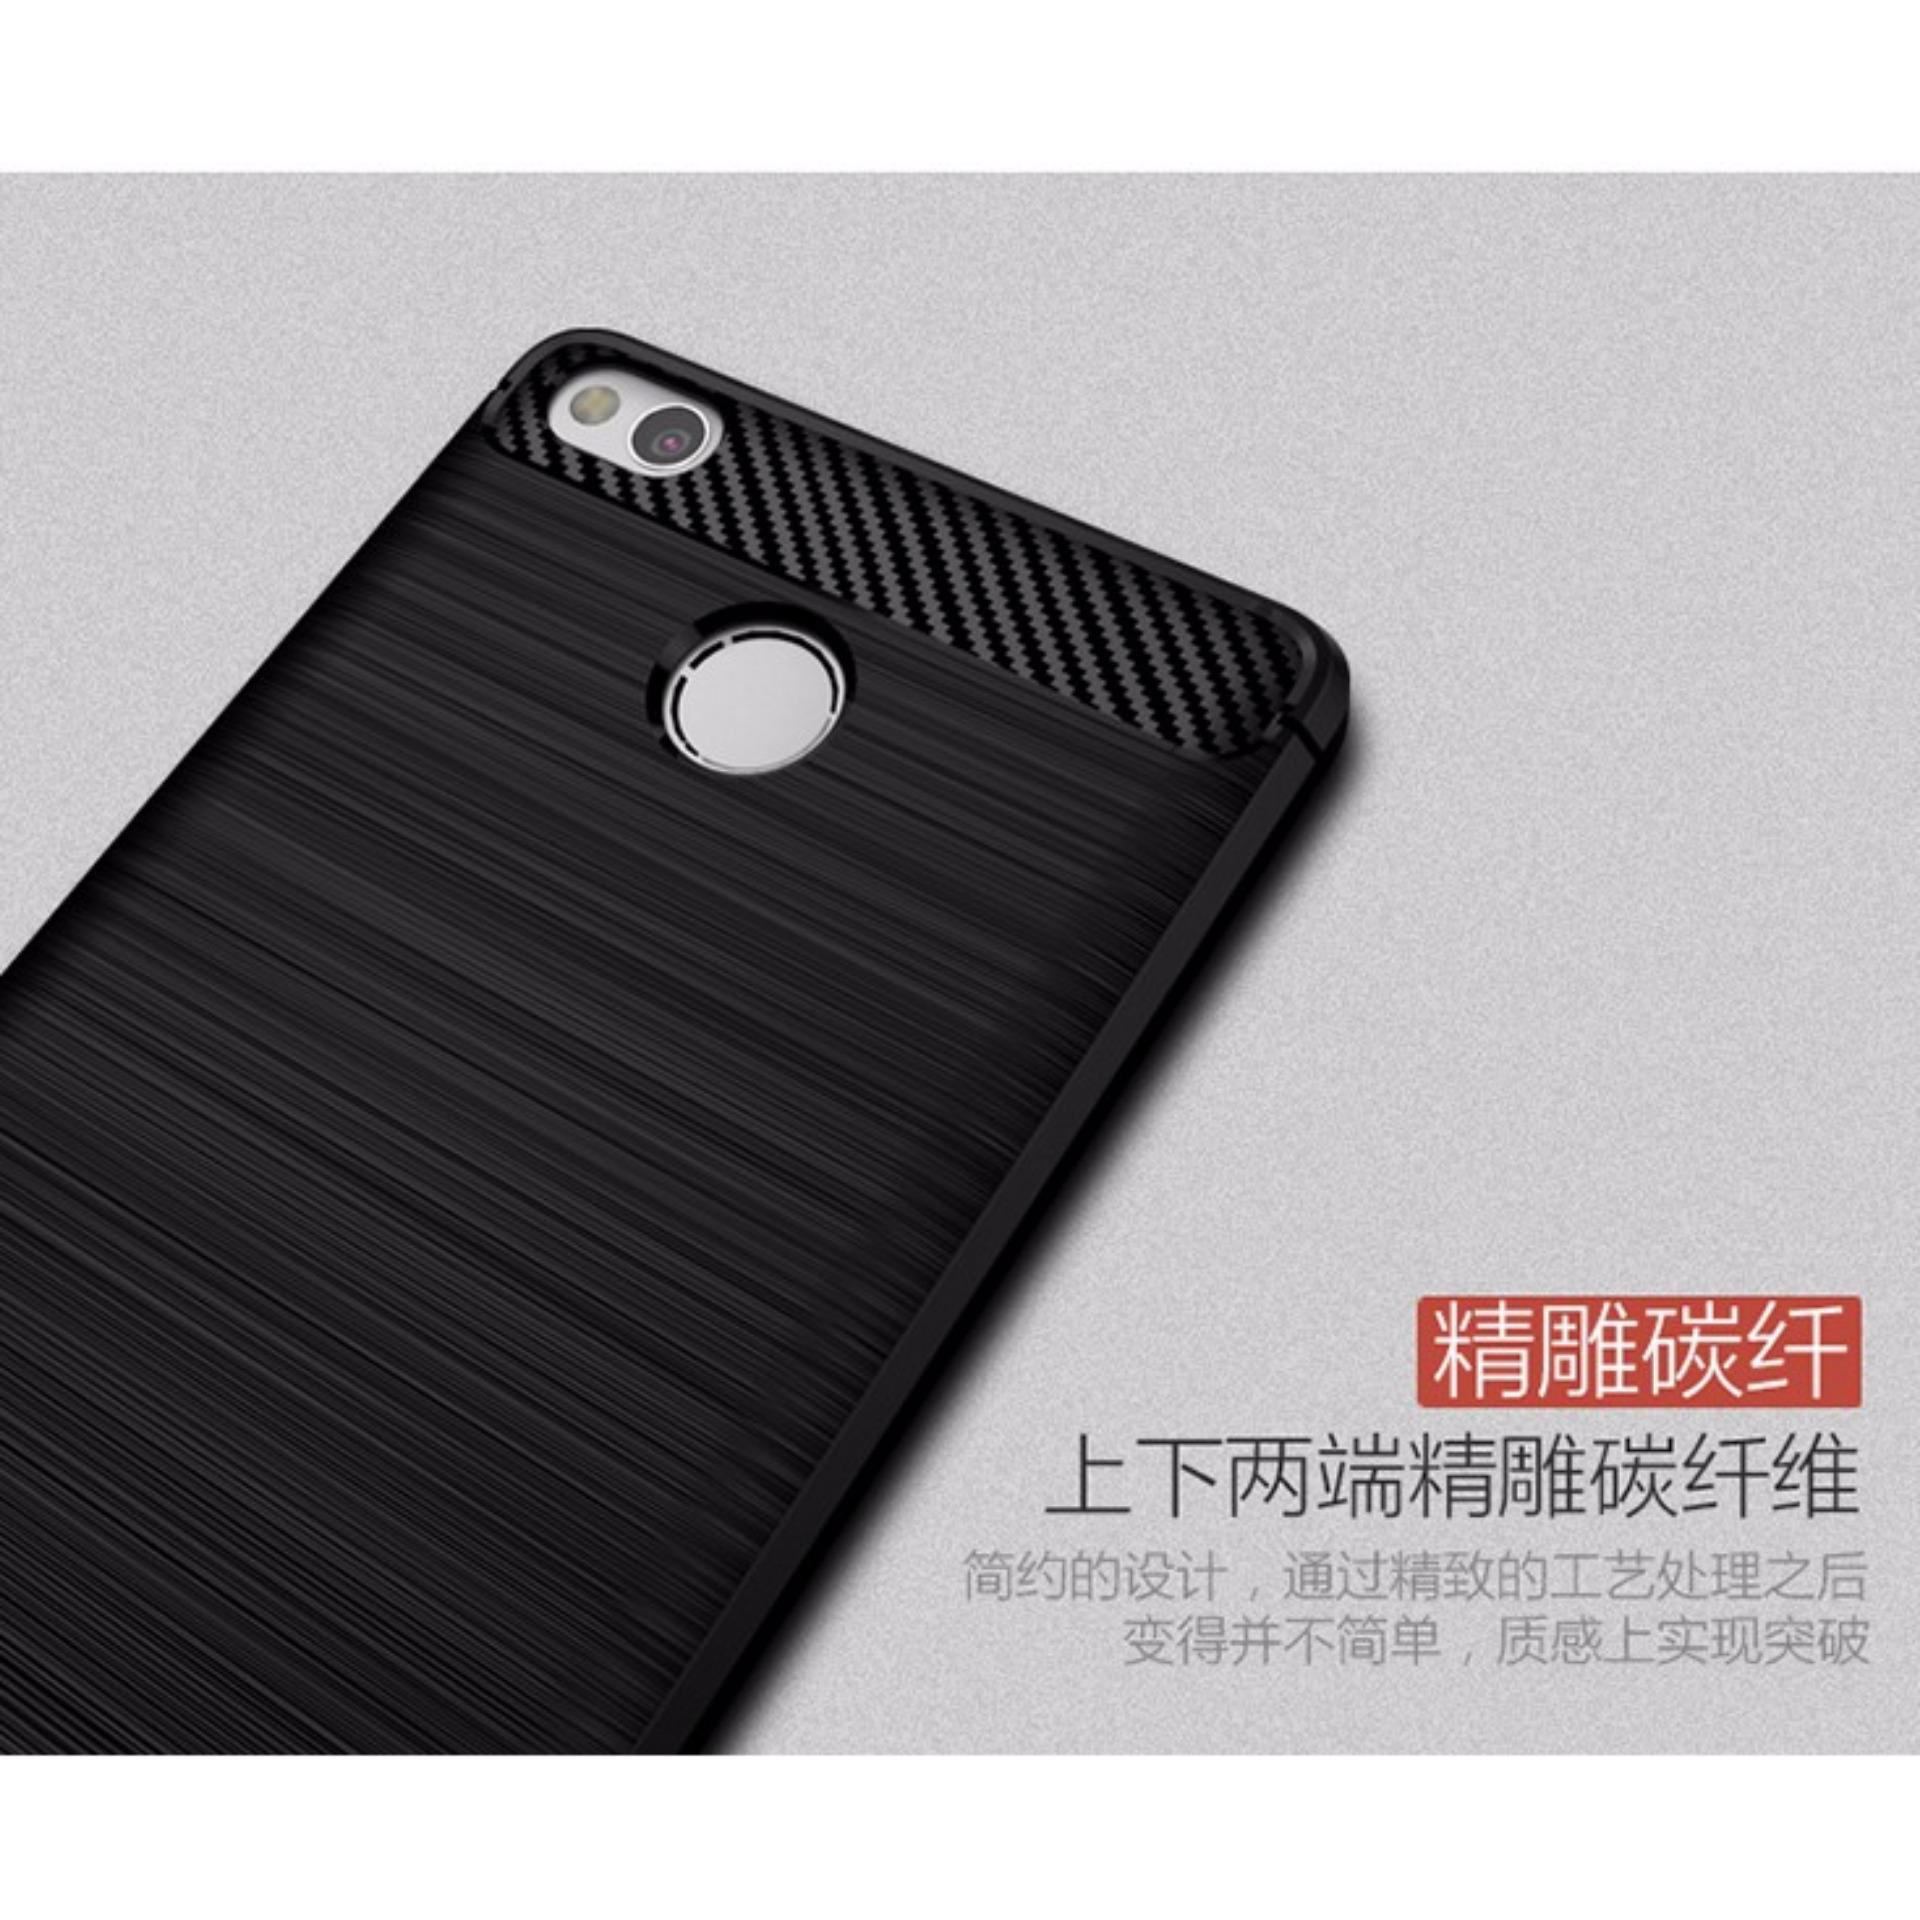 ... iPaky Carbon Fiber Shockproof Hybrid Back Case for Xiaomi Redmi 3 Pro / 3s / Prime ...